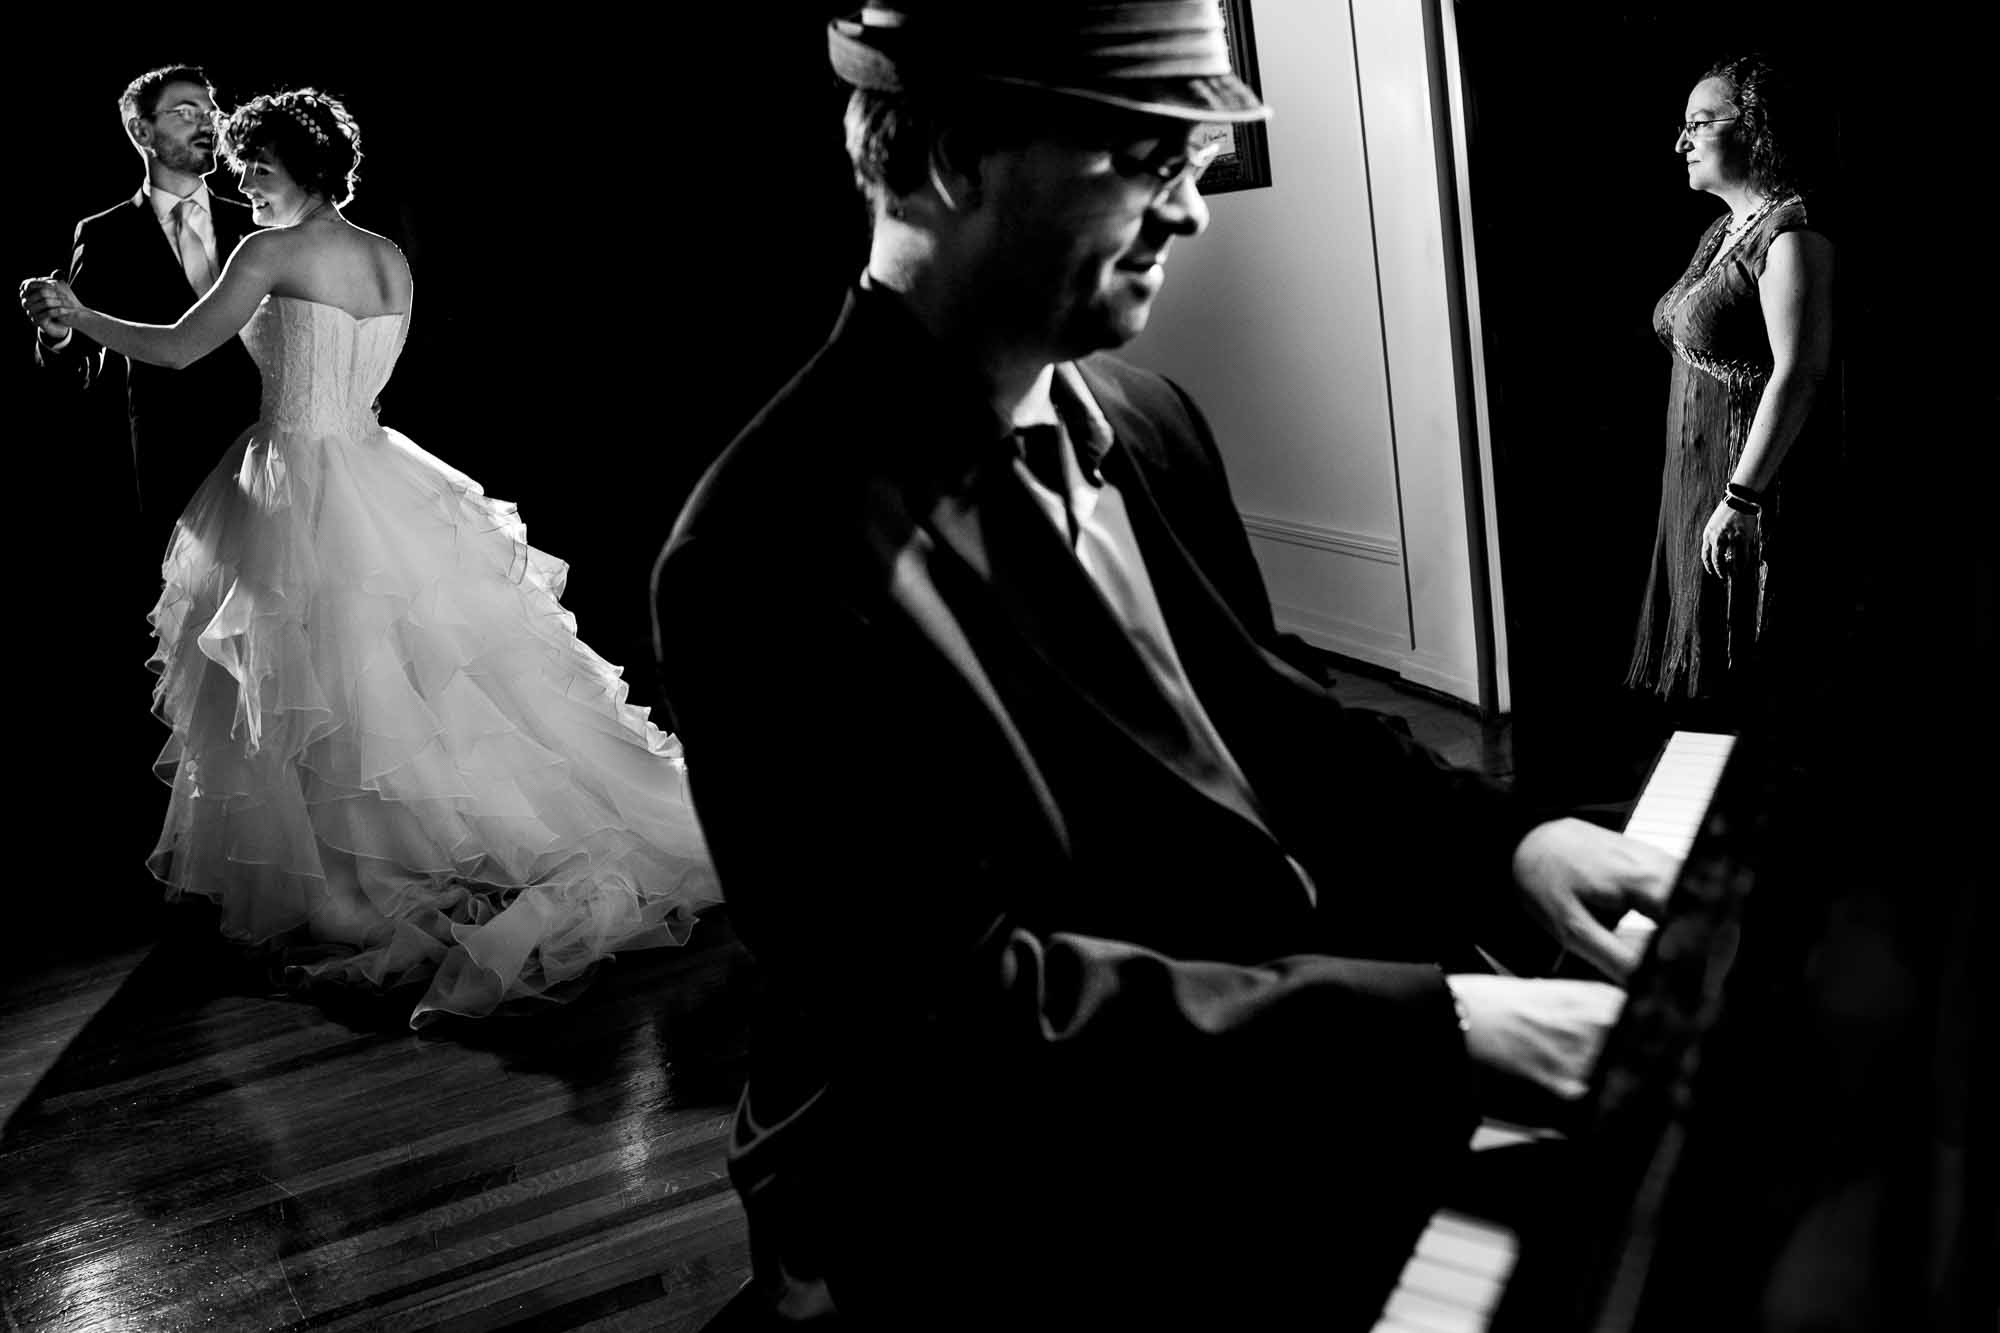 First dance with piano player in foreground - photo by JOS & TREE